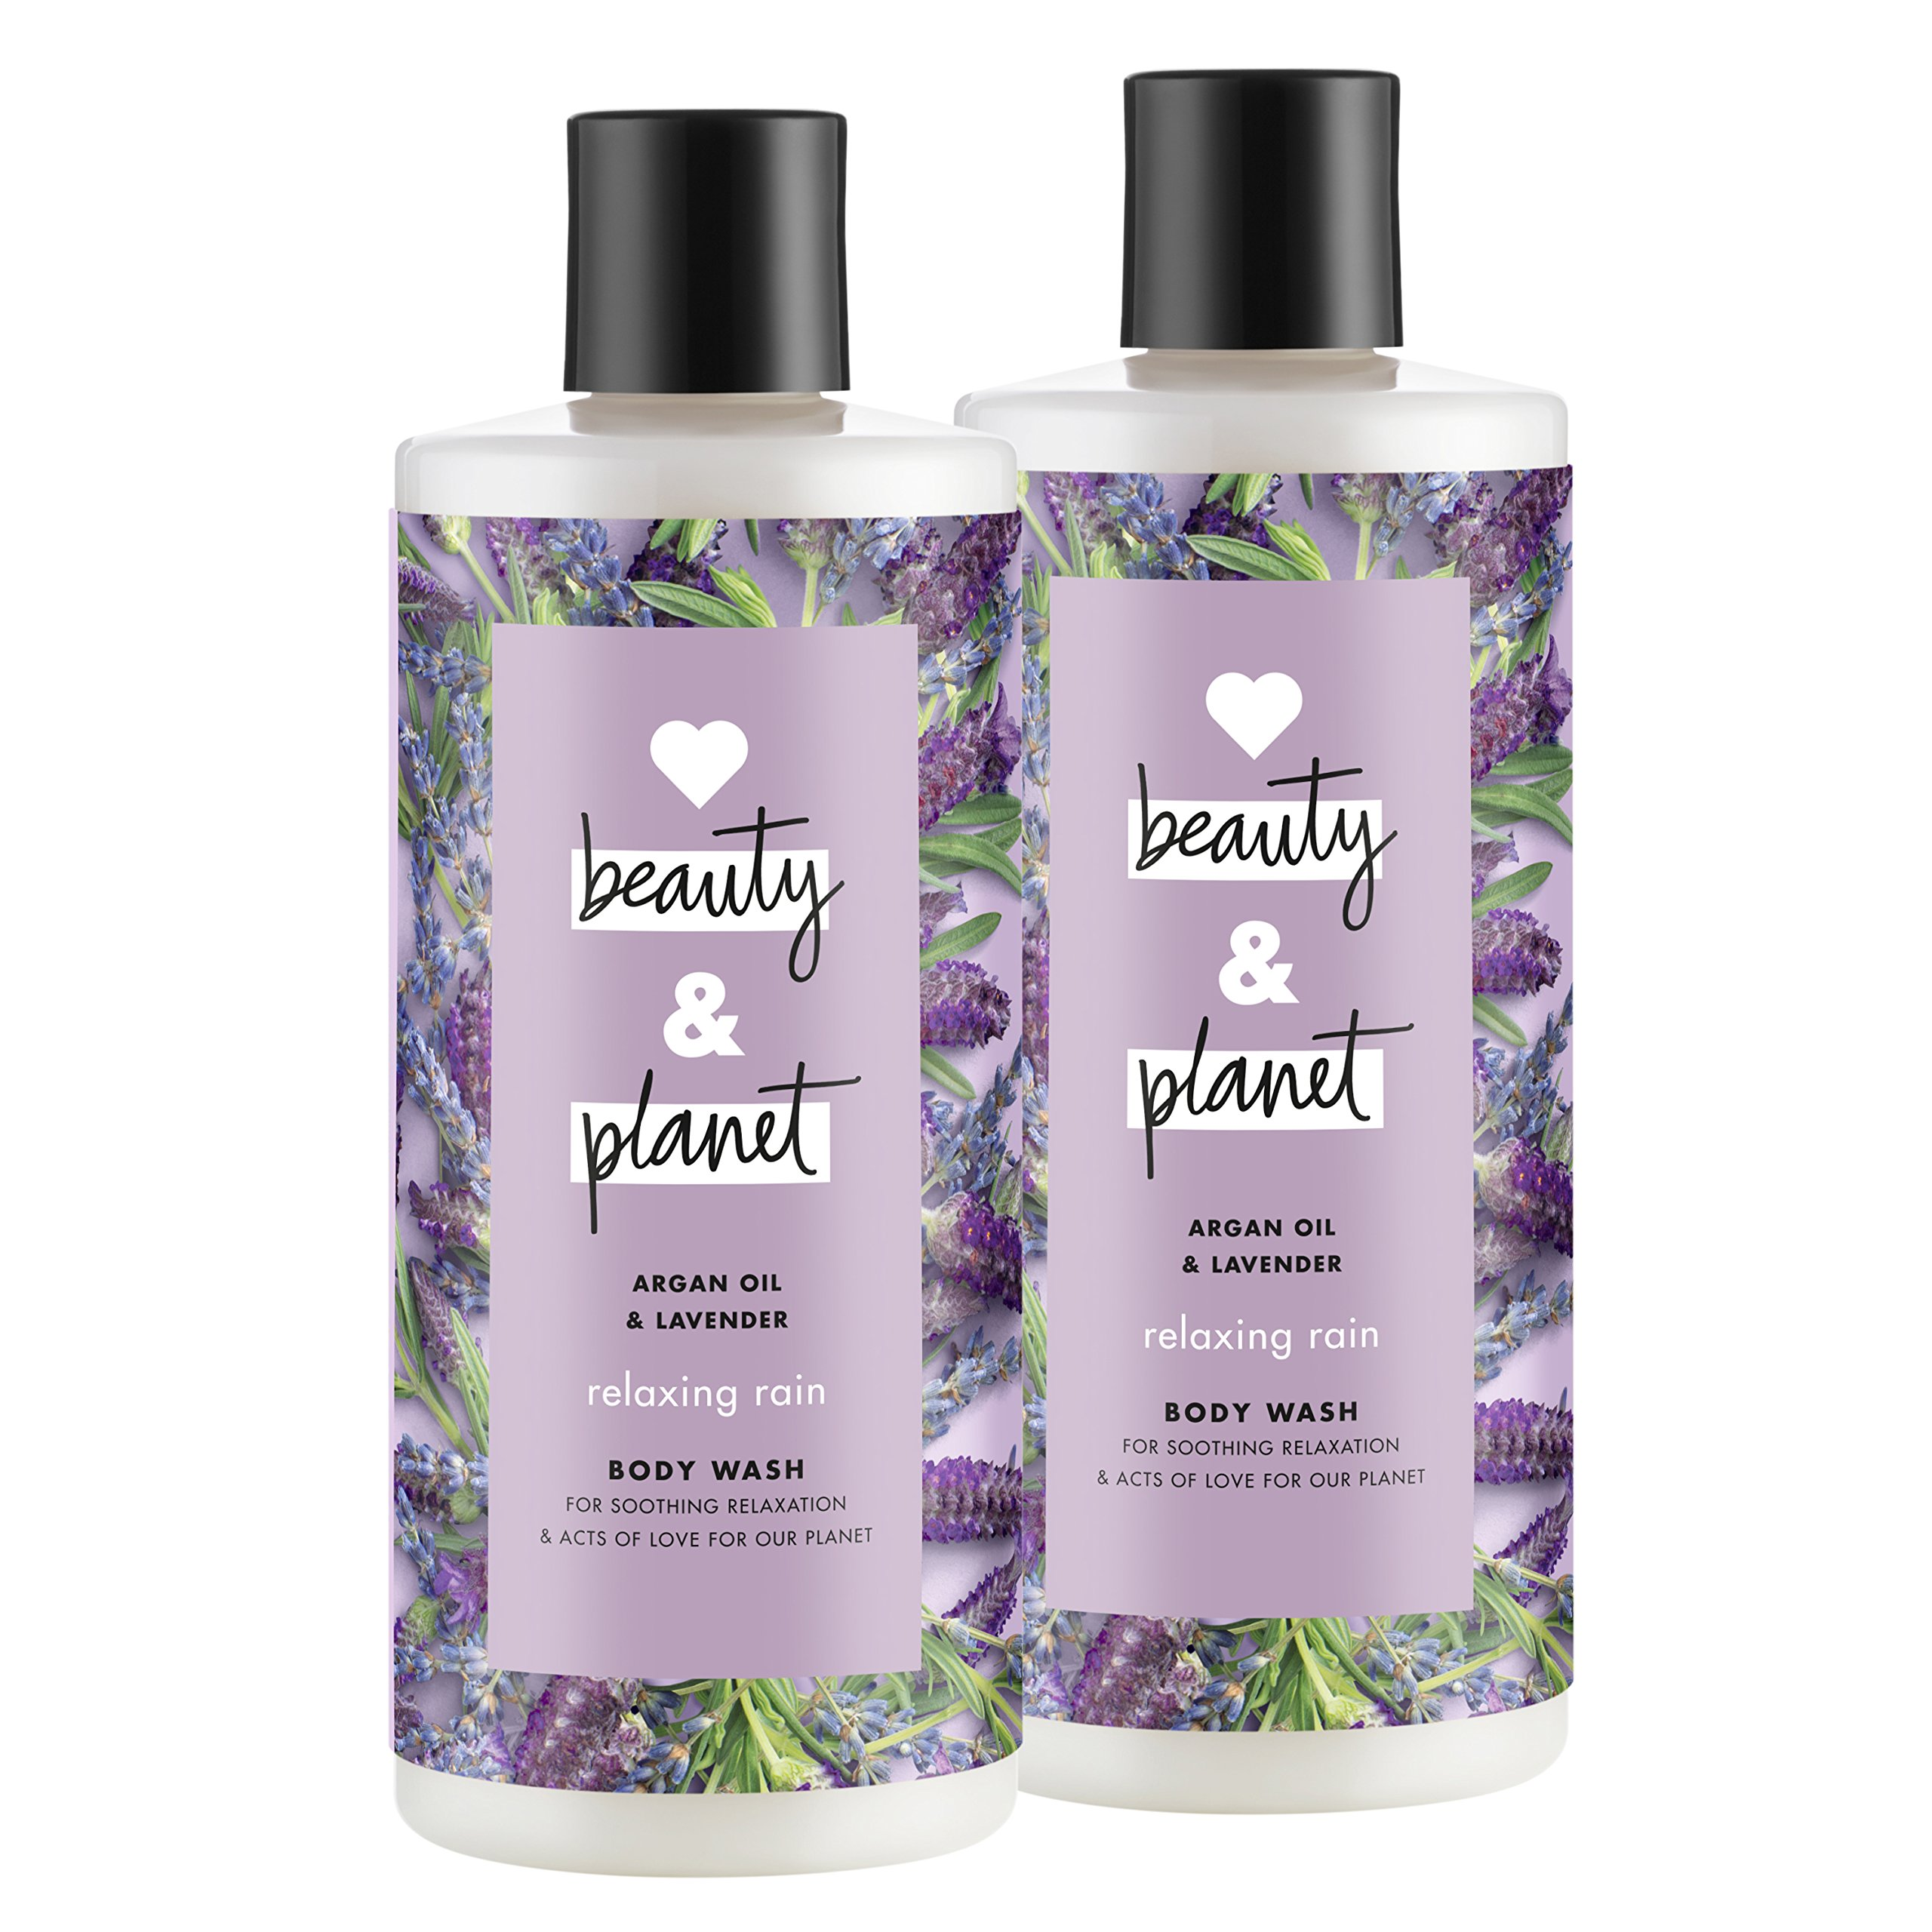 Love Beauty And Planet Relaxing Rain Body Wash Argan Oil & Lavender 16 oz, 2 count by Love Beauty And Planet